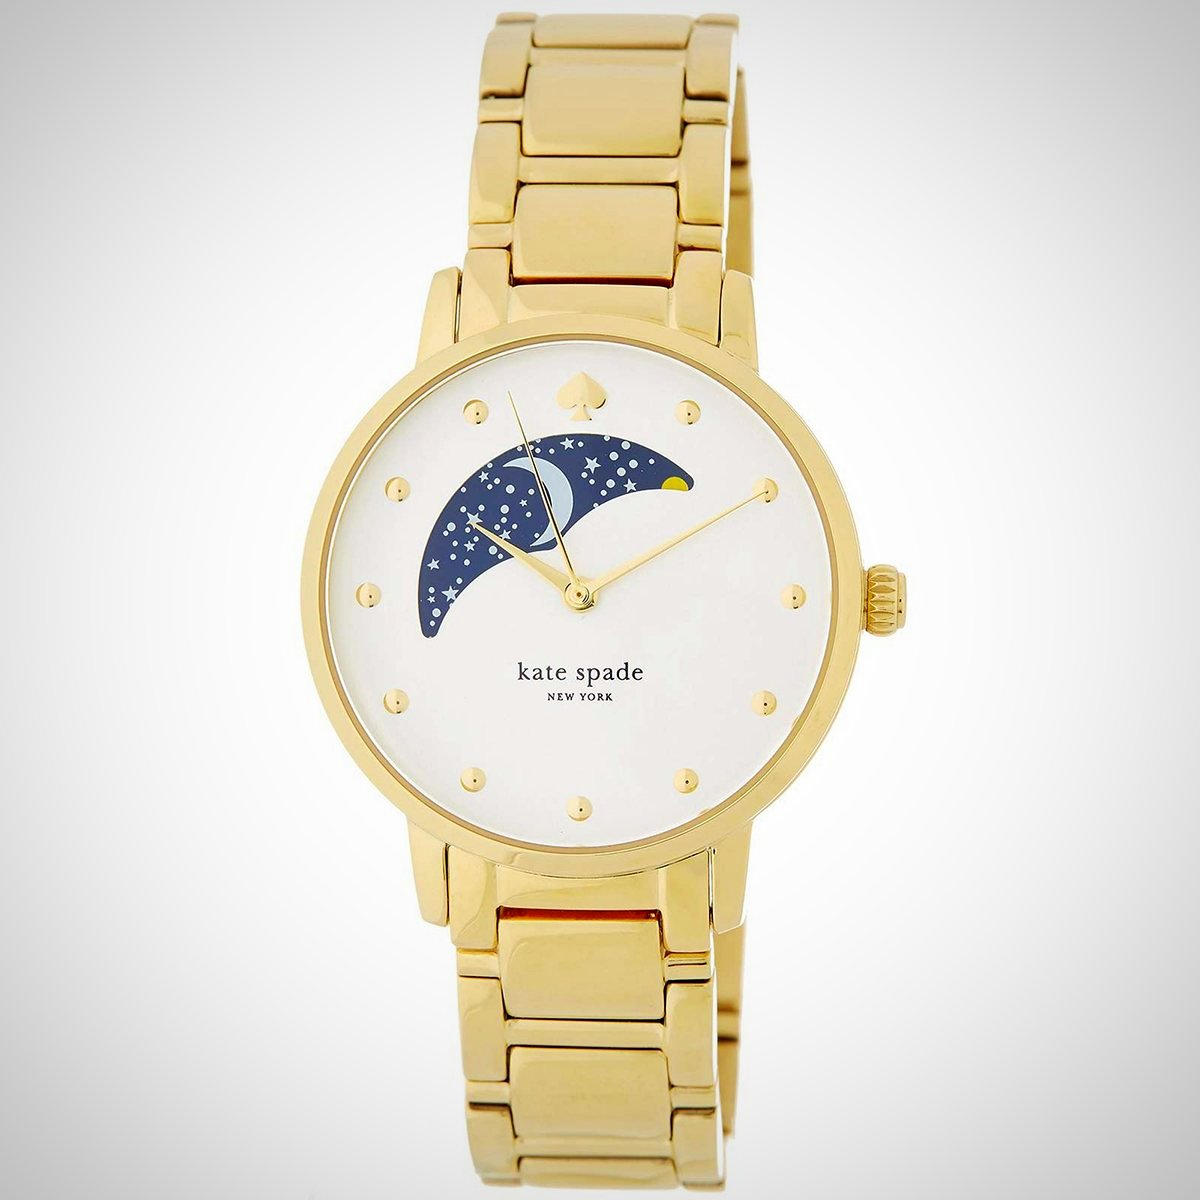 Kate Spade New York KSW1072 Gramercy Damen Uhr